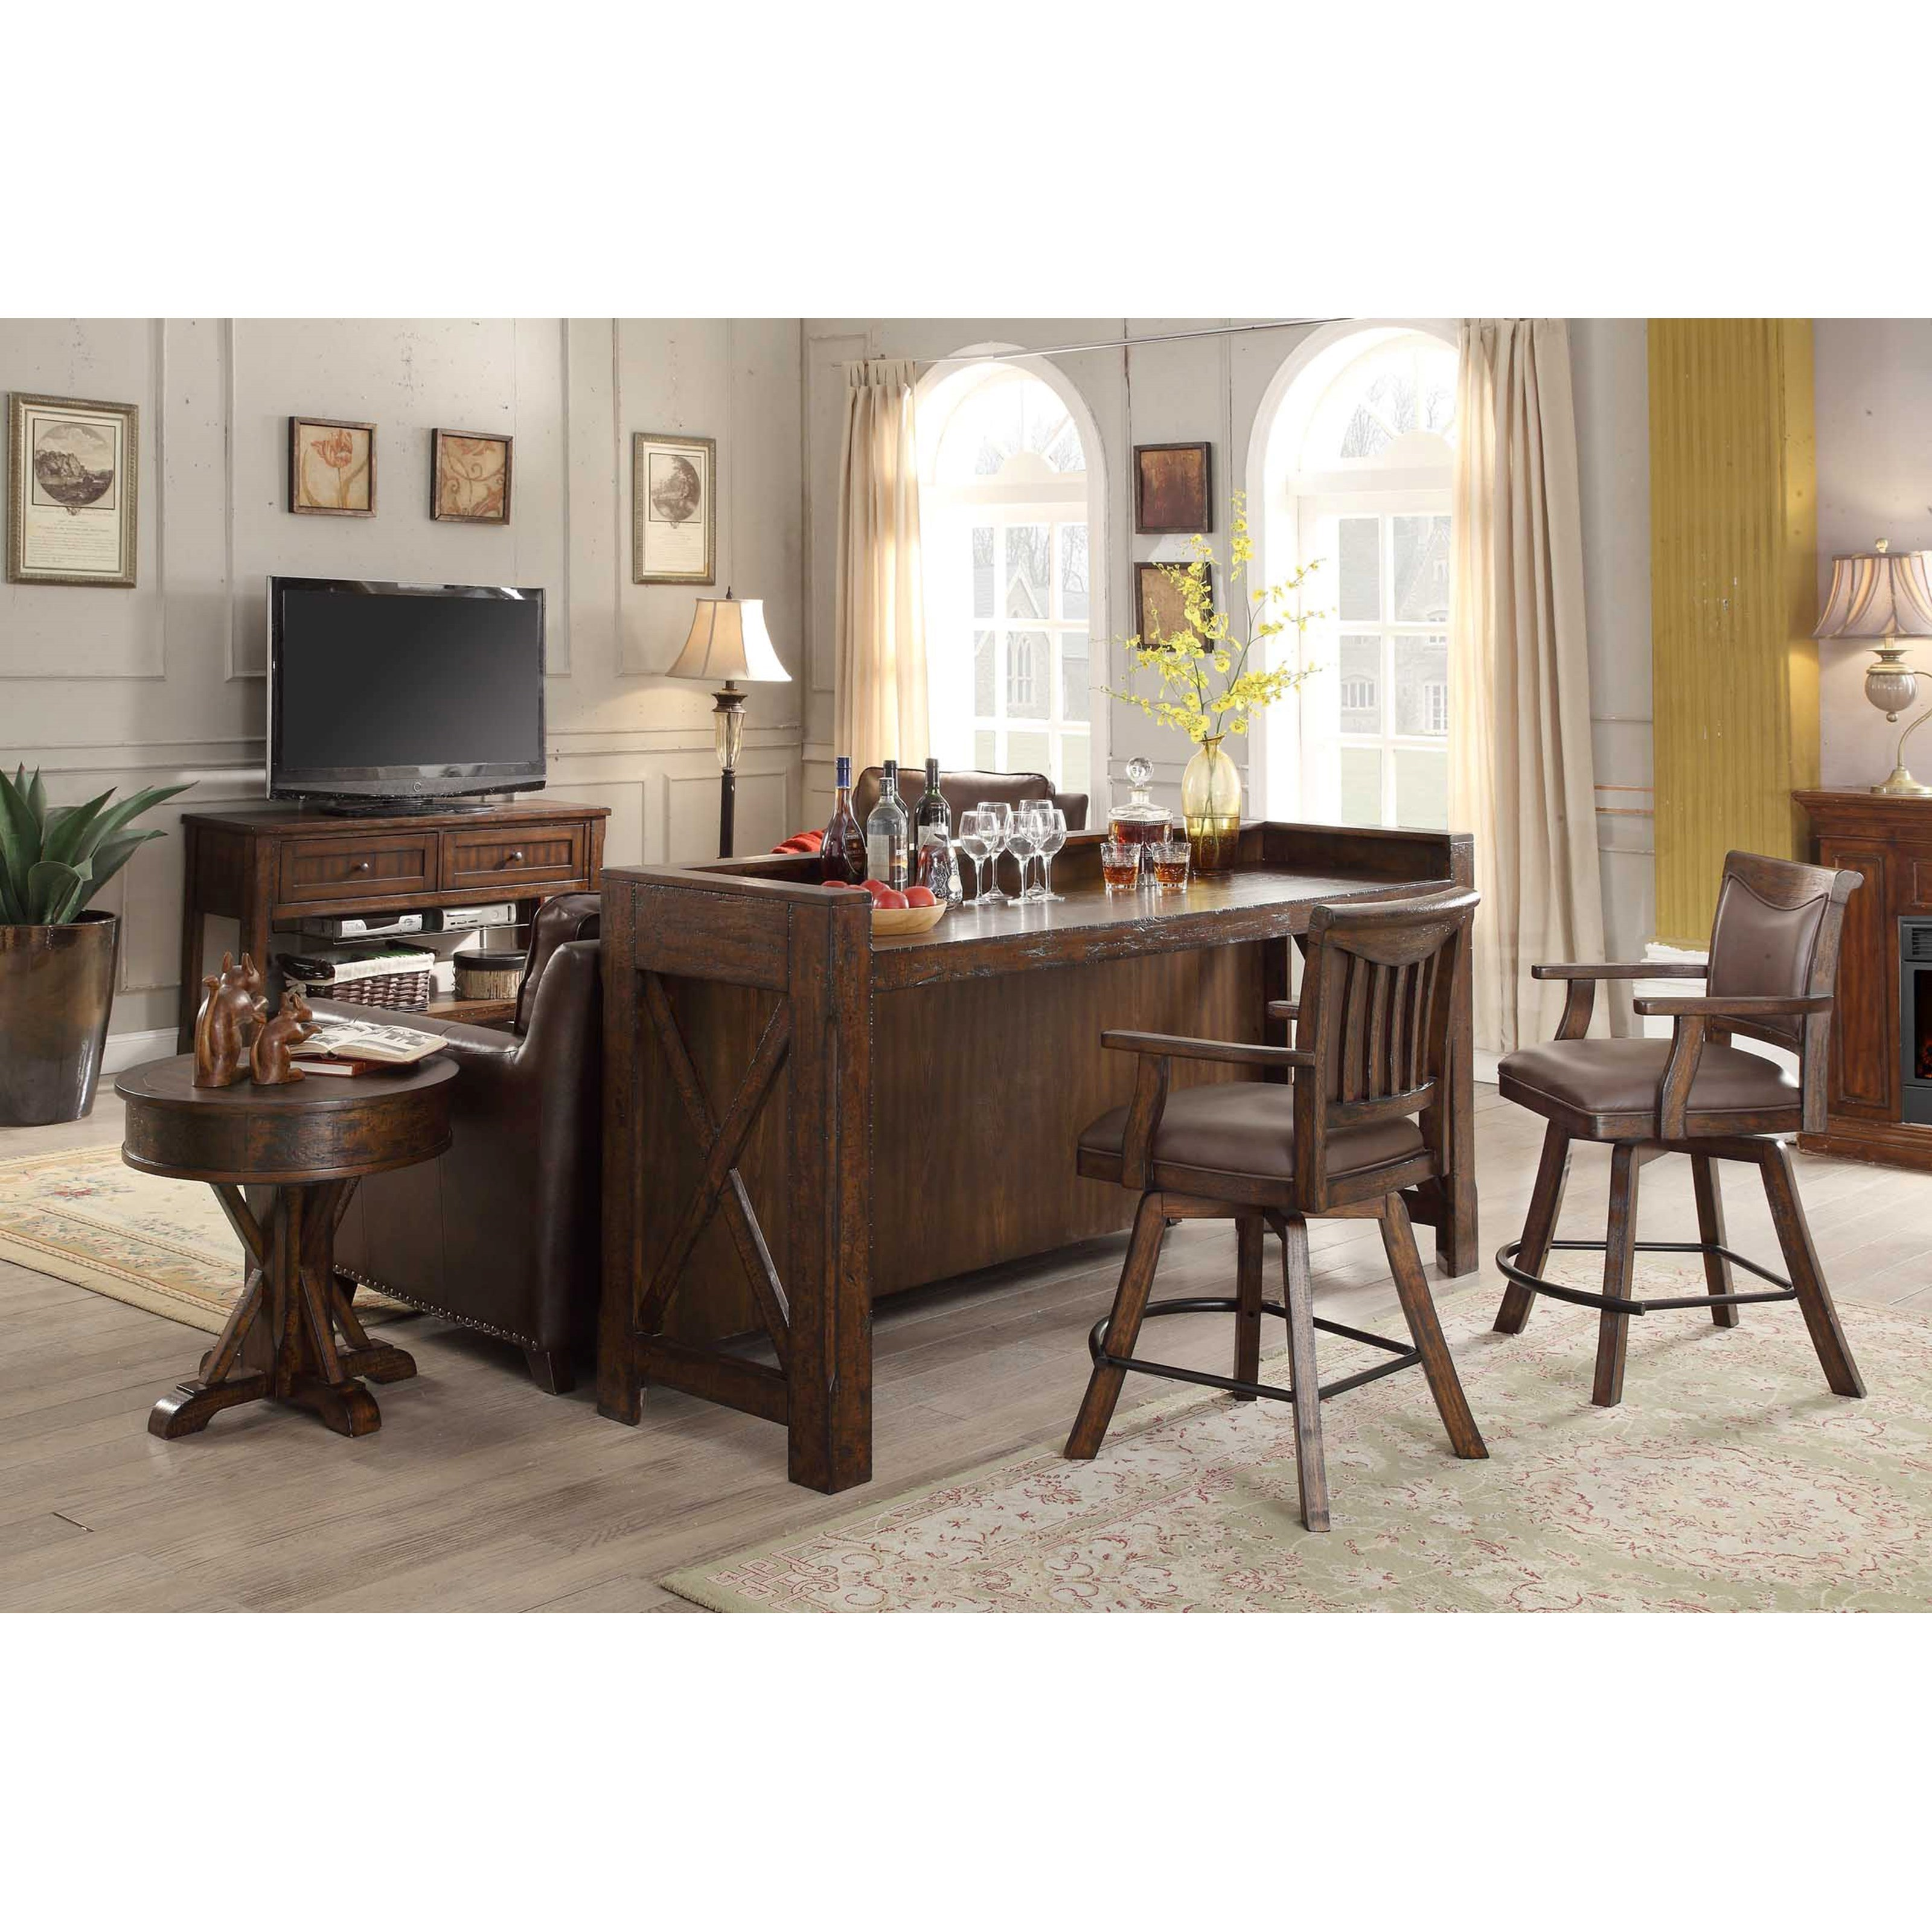 Gettysburg Bar Set With Stools by E.C.I. Furniture at Northeast Factory Direct